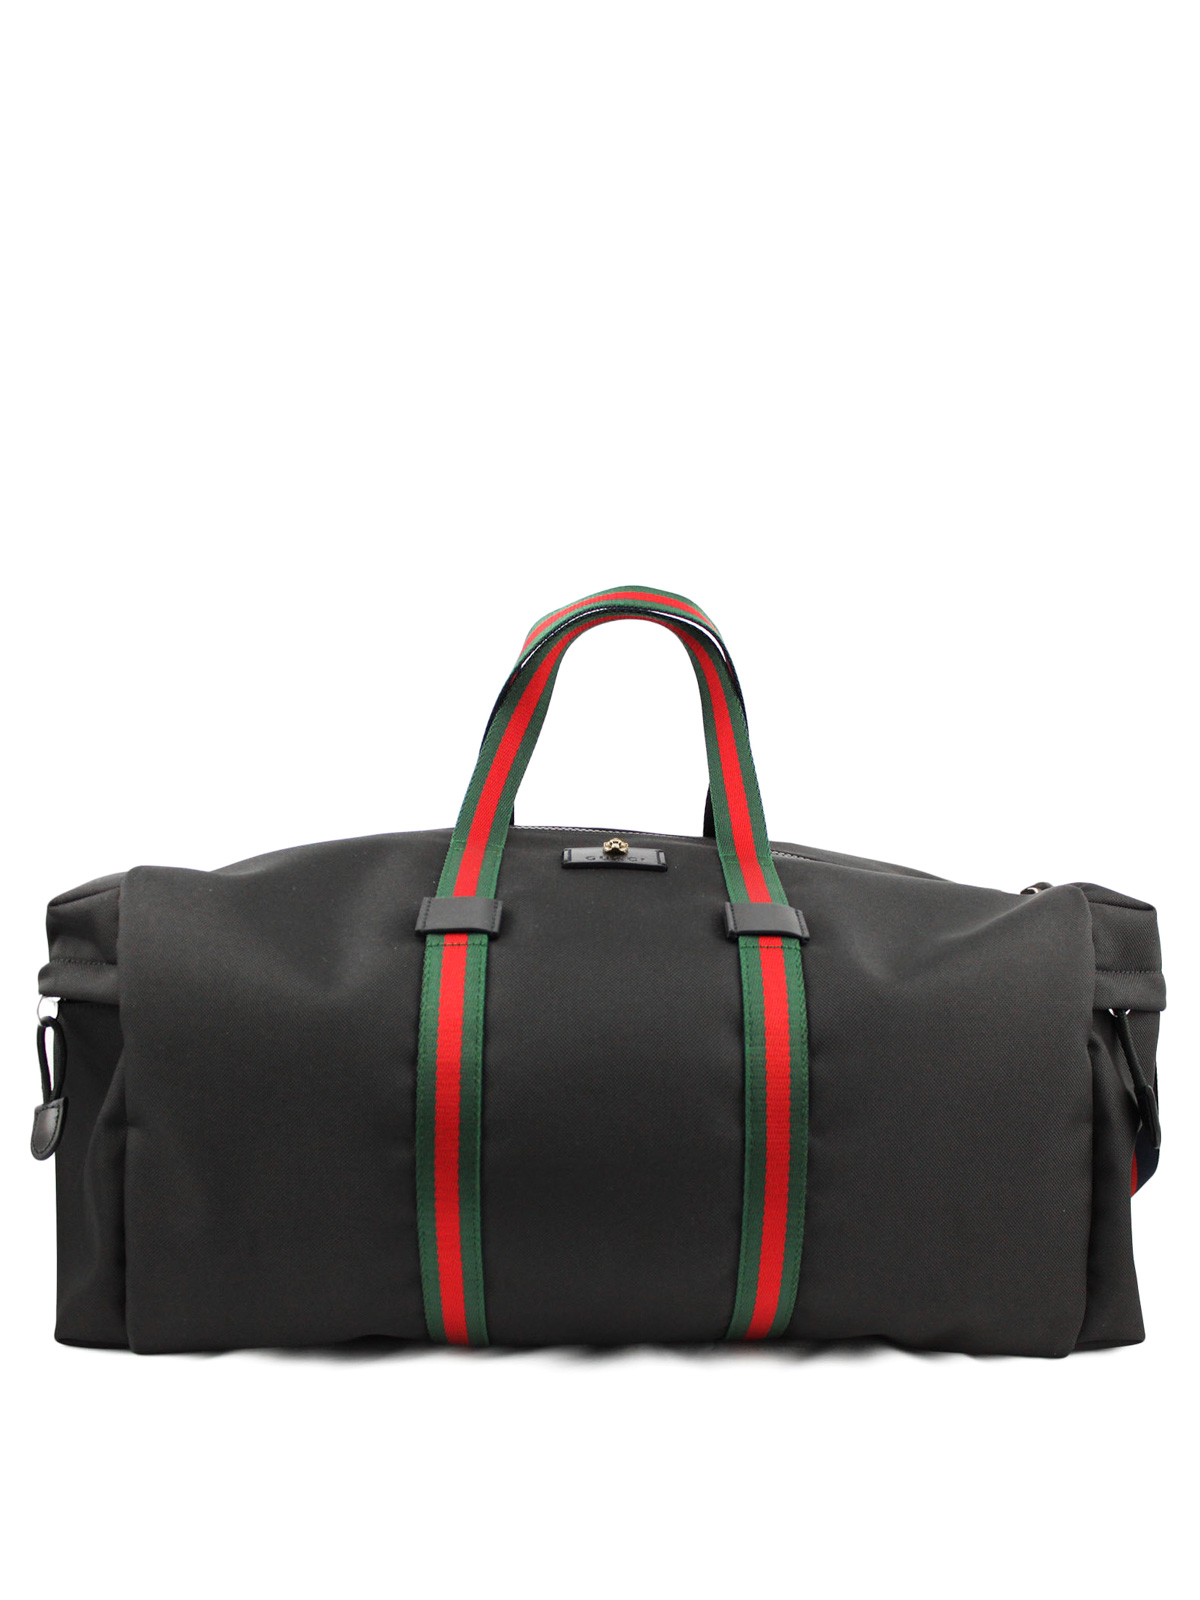 web details canvas duffle bag by gucci luggage travel. Black Bedroom Furniture Sets. Home Design Ideas